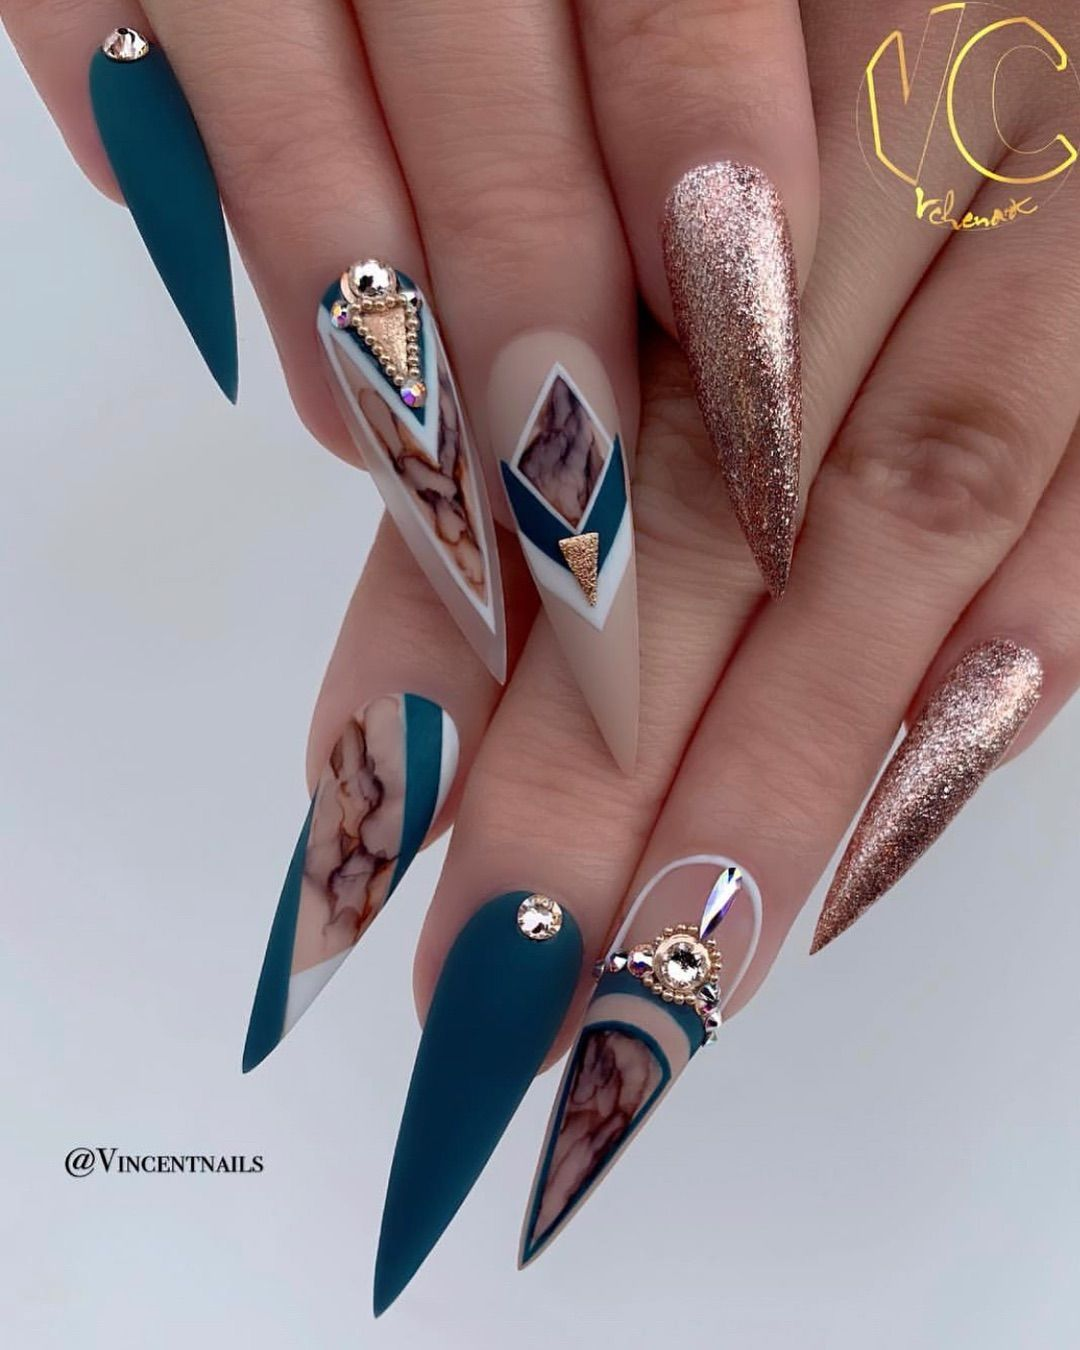 Lee Stiletto Nails On Instagram These Marble Line Works